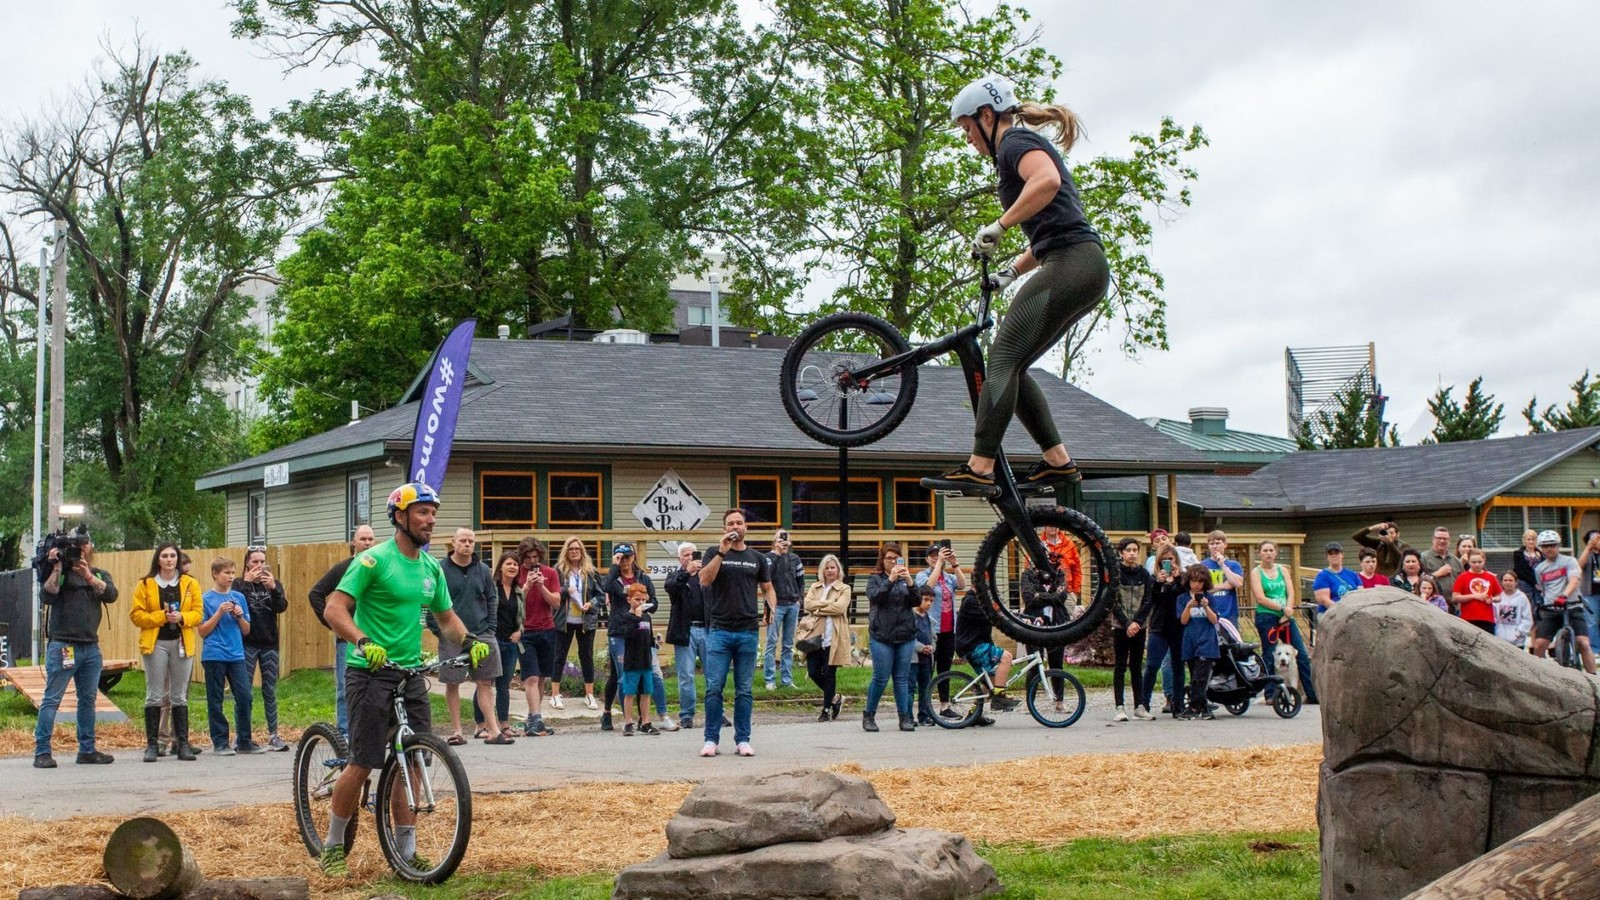 Women Shred Activities to Take Center Stage at the Bentonville Bike Fest, Presented by Pyure Organic - June 18-20 2021